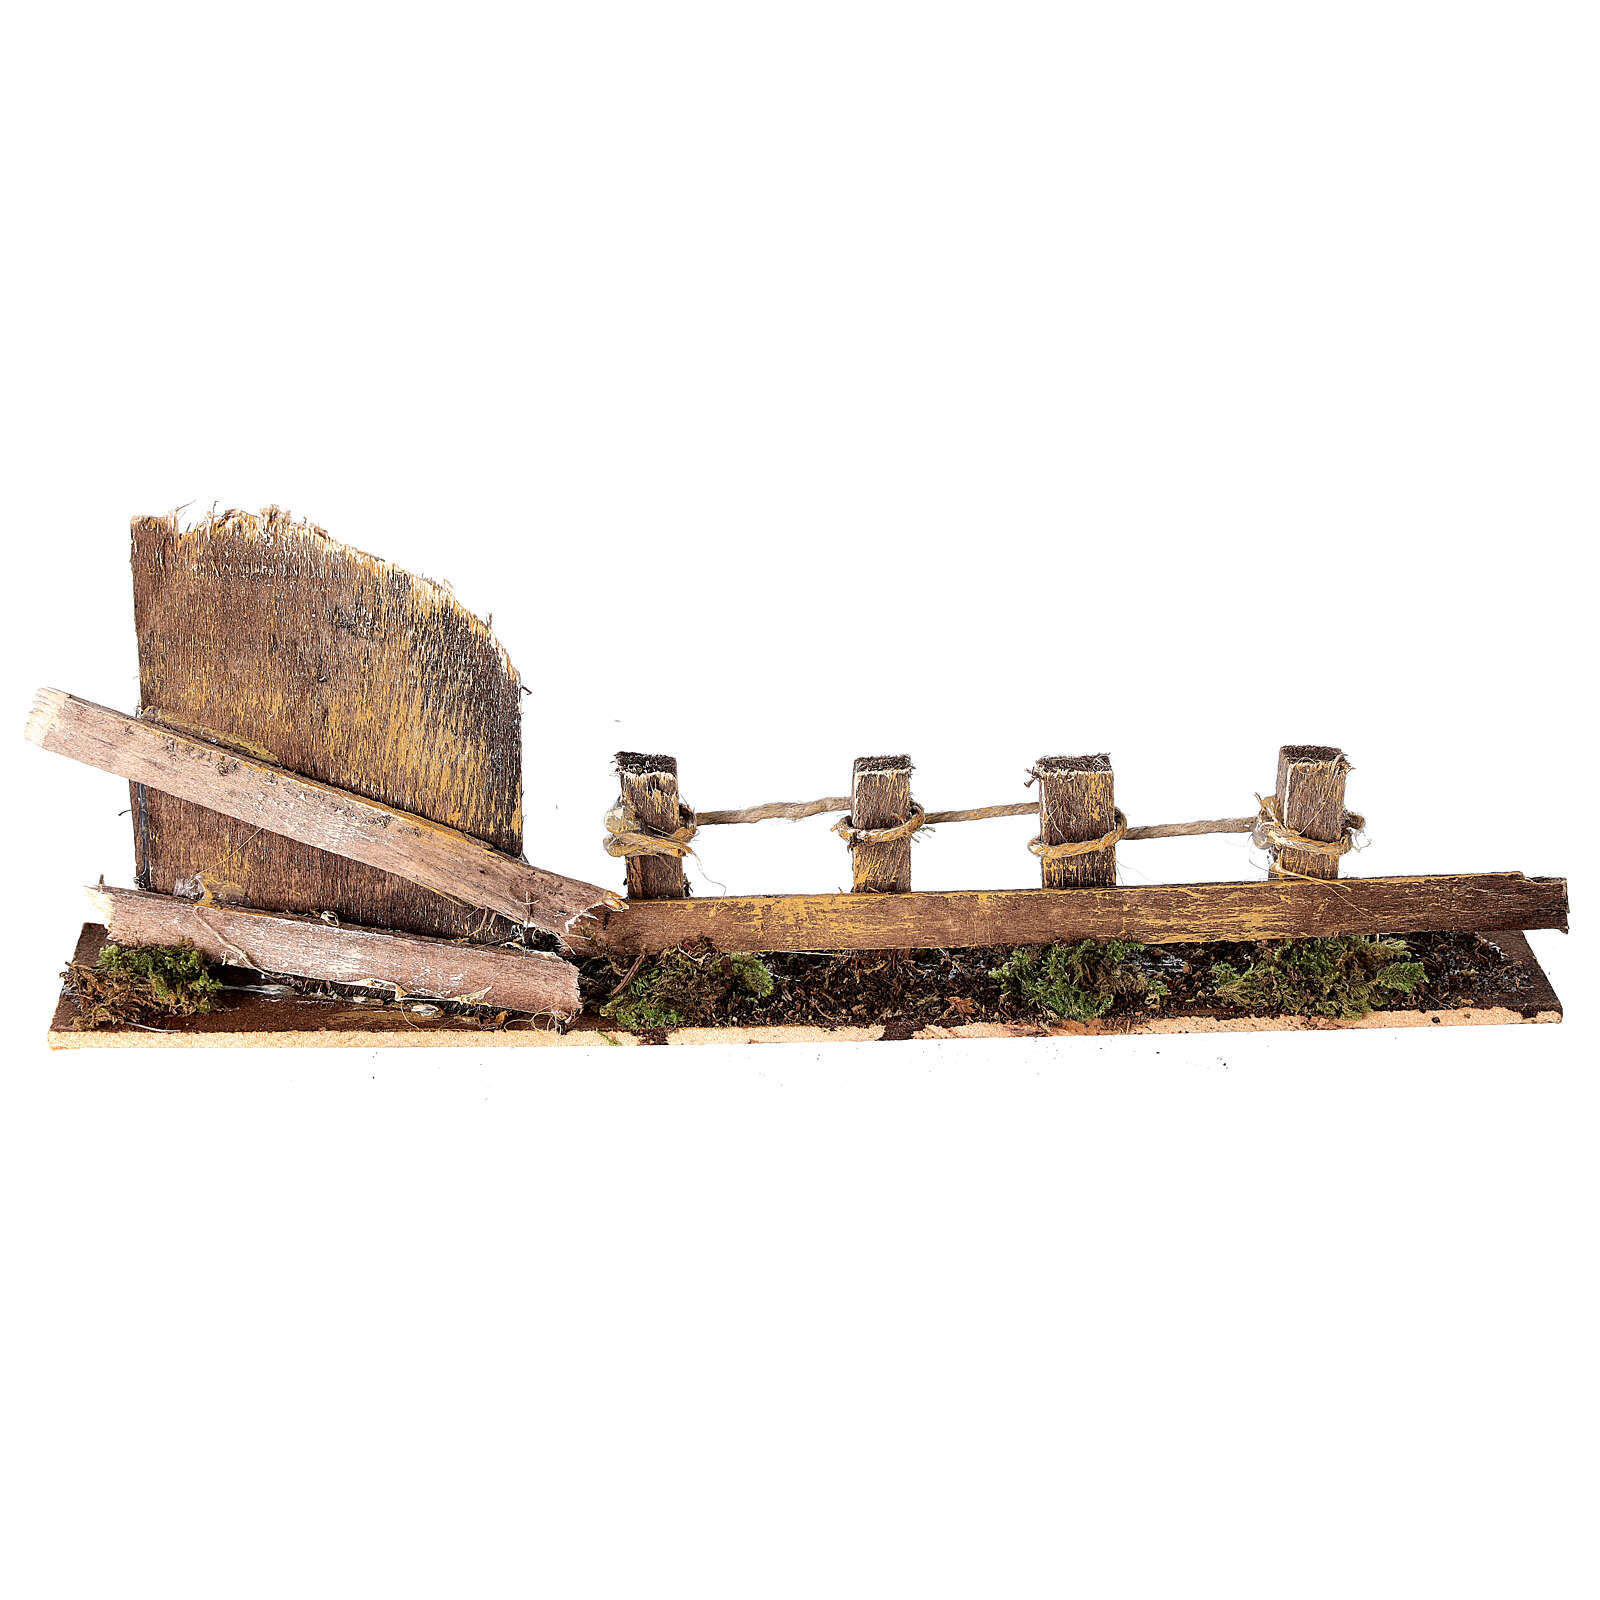 Fence with wooden gate 10x25x5 cm nativity scene 10-12 cm 4